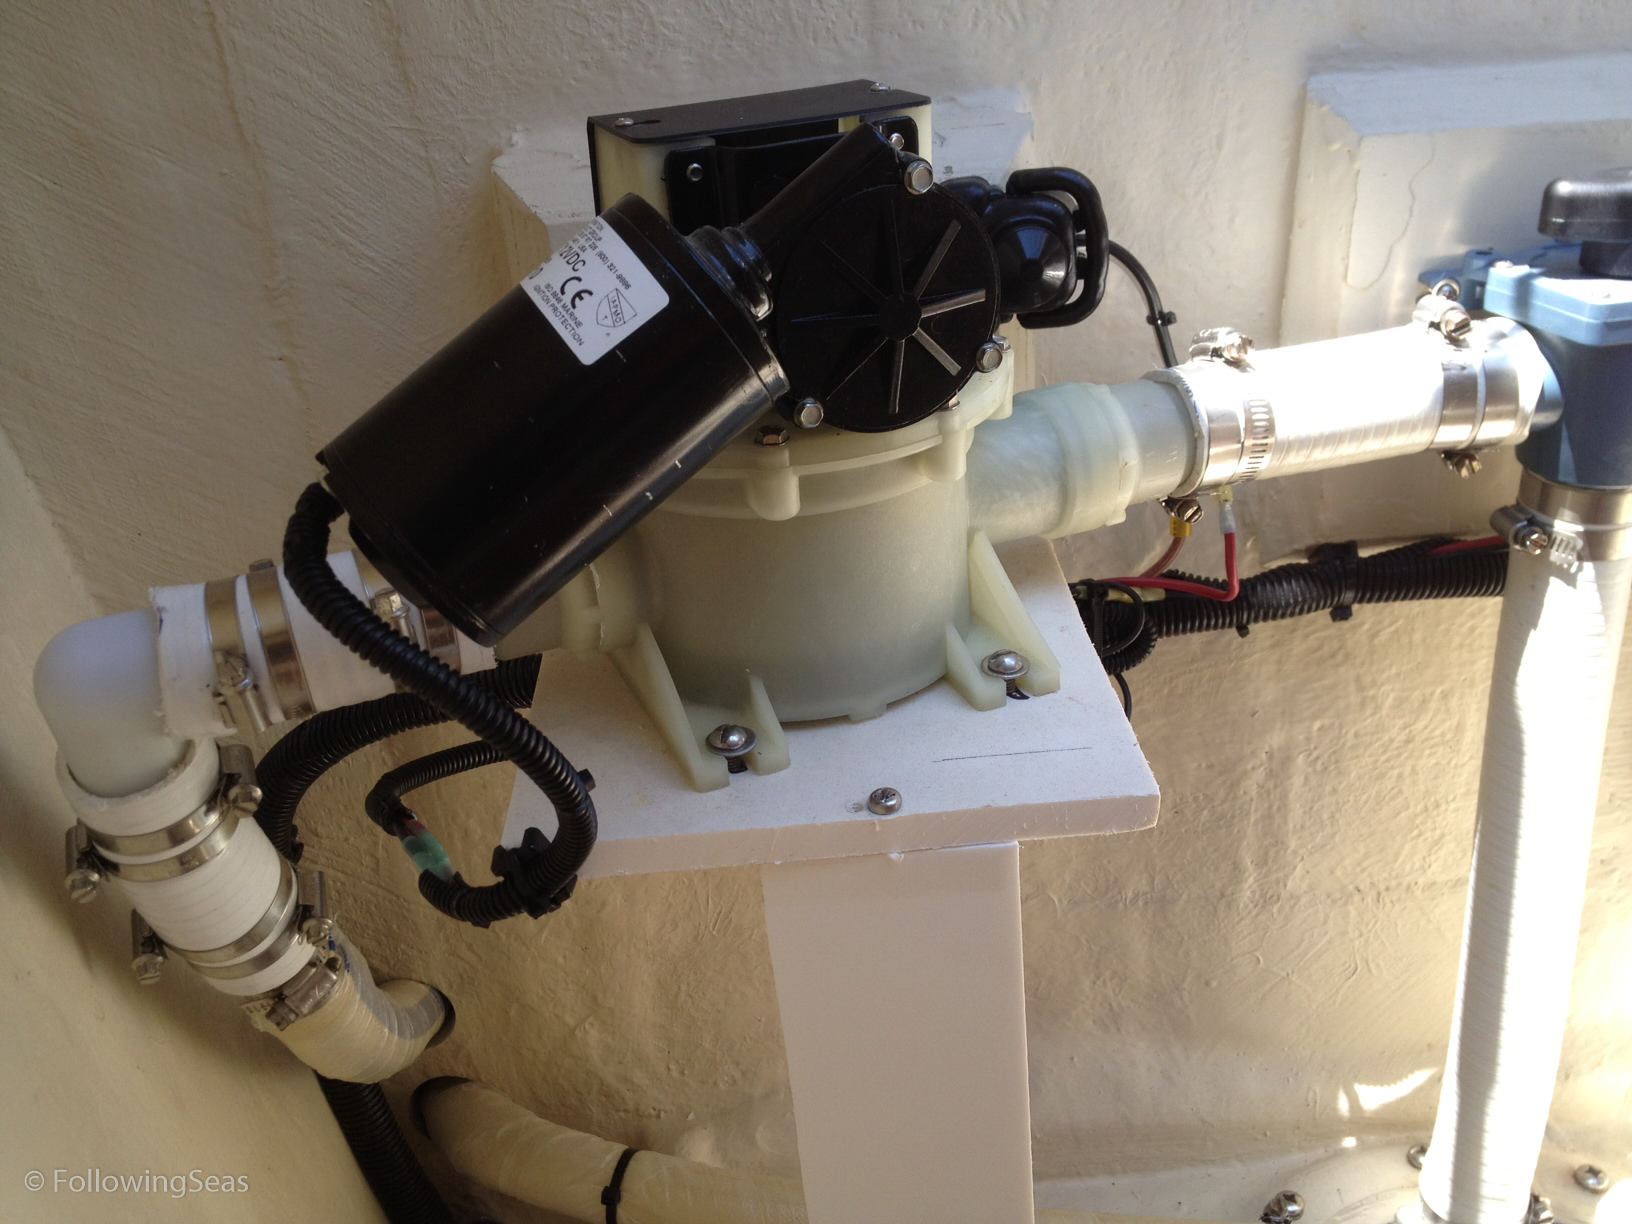 This diaphragm pump handles all waste, can run dry, and is easily owner serviced if necessary. There is nothing worse than a full holding tank and no way to empty it except at a marina that has a pump out facility, which may be difficult to find in areas far from home.